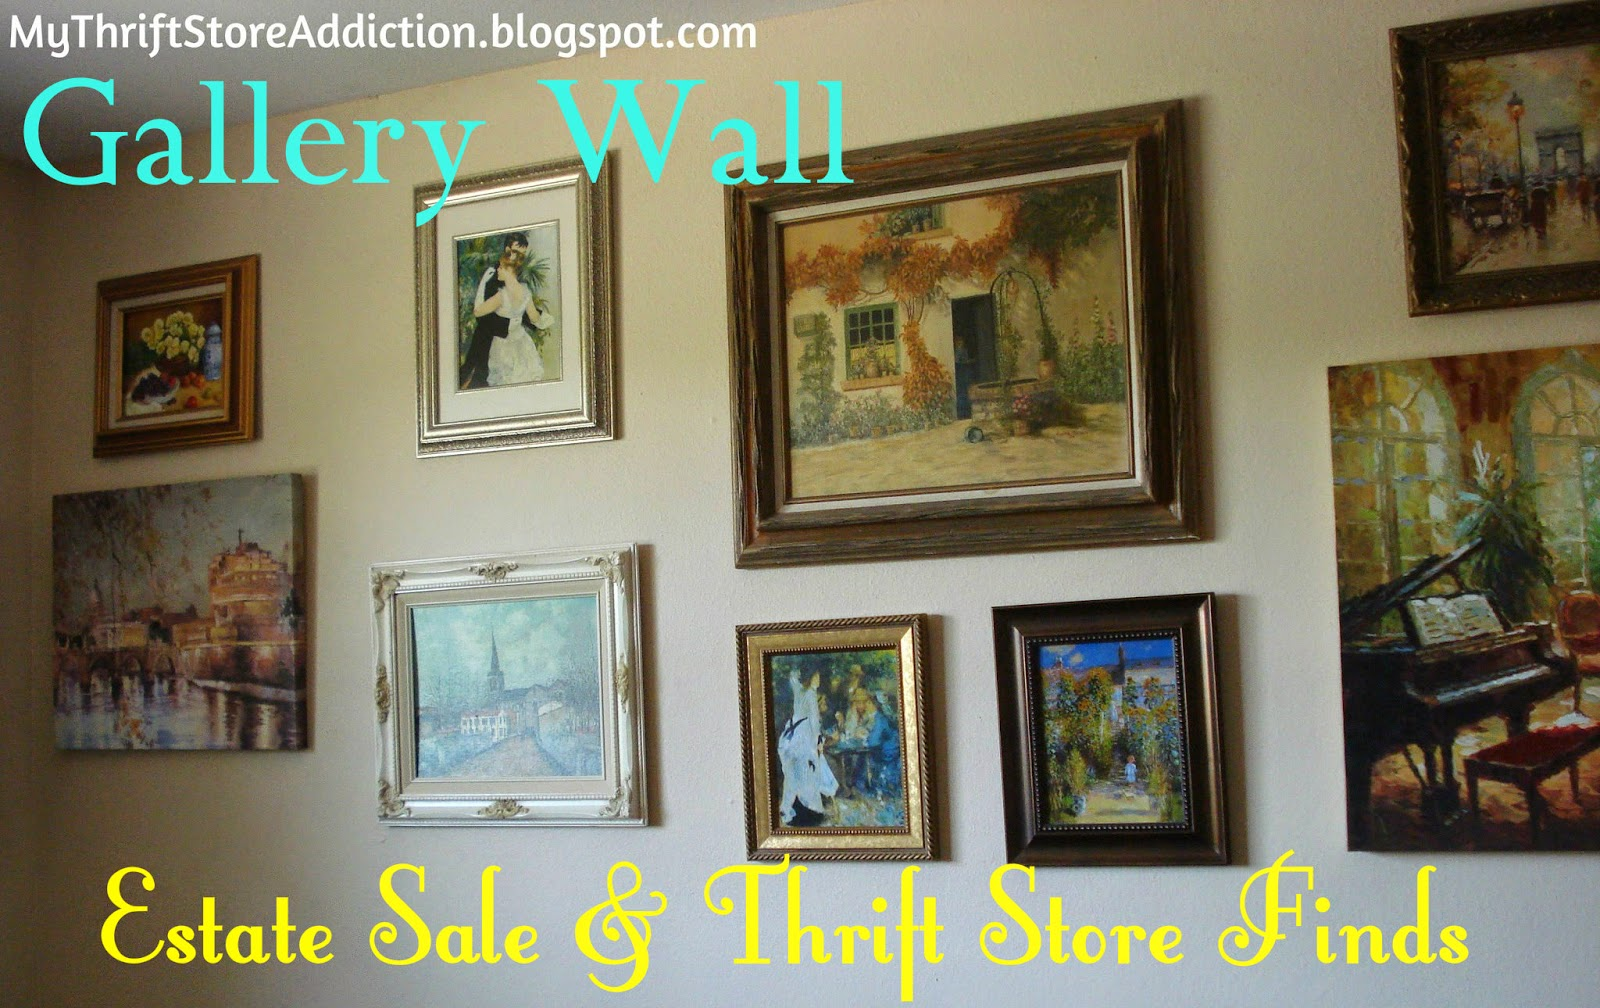 Gallery wall created from estate sale finds